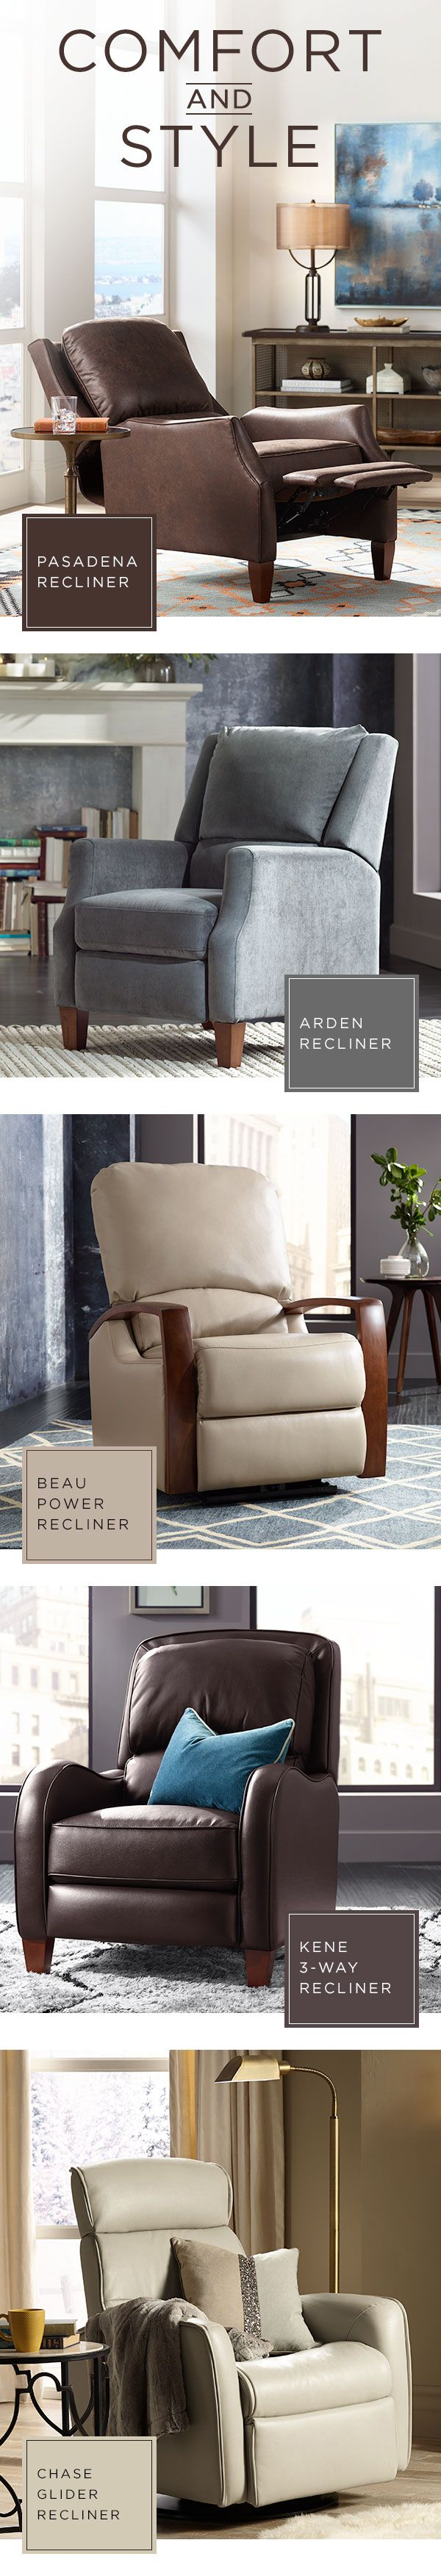 Relax in comfort and style with a recliner chair to match your home decor. - 25+ Best Ideas About Recliner Chairs On Pinterest Recliners